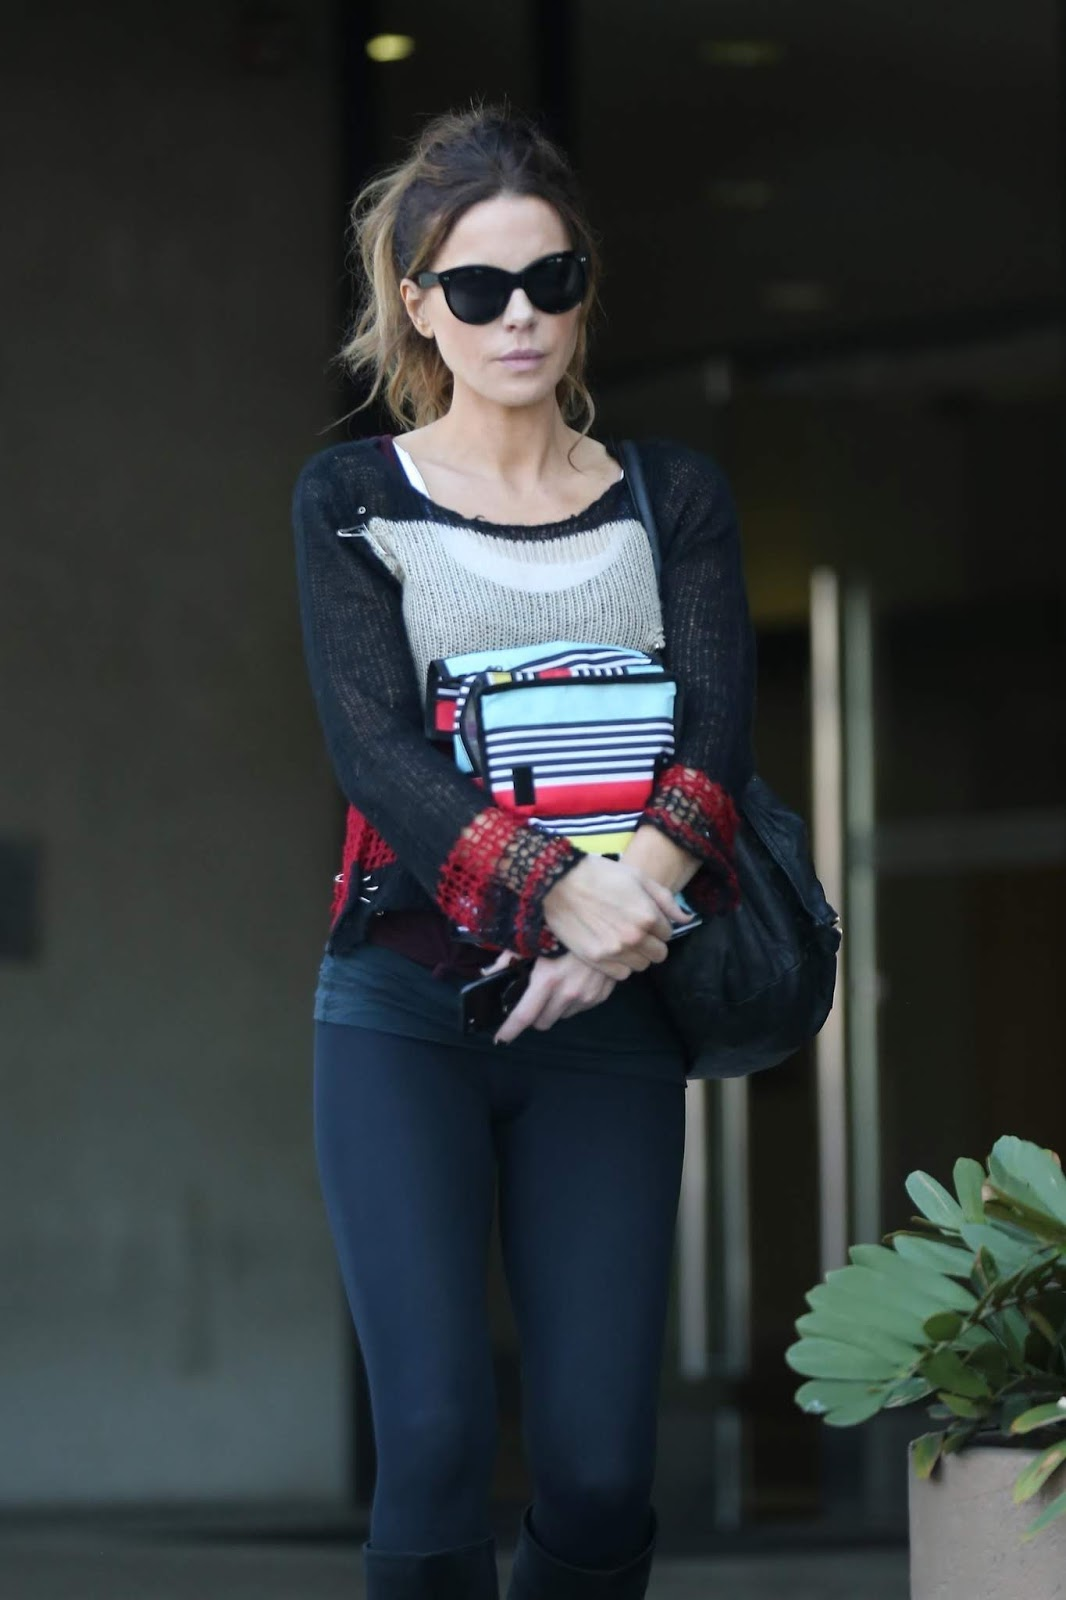 Kate Beckinsale - looks lean and fit leaving a medical building in LA - 02/08/2019